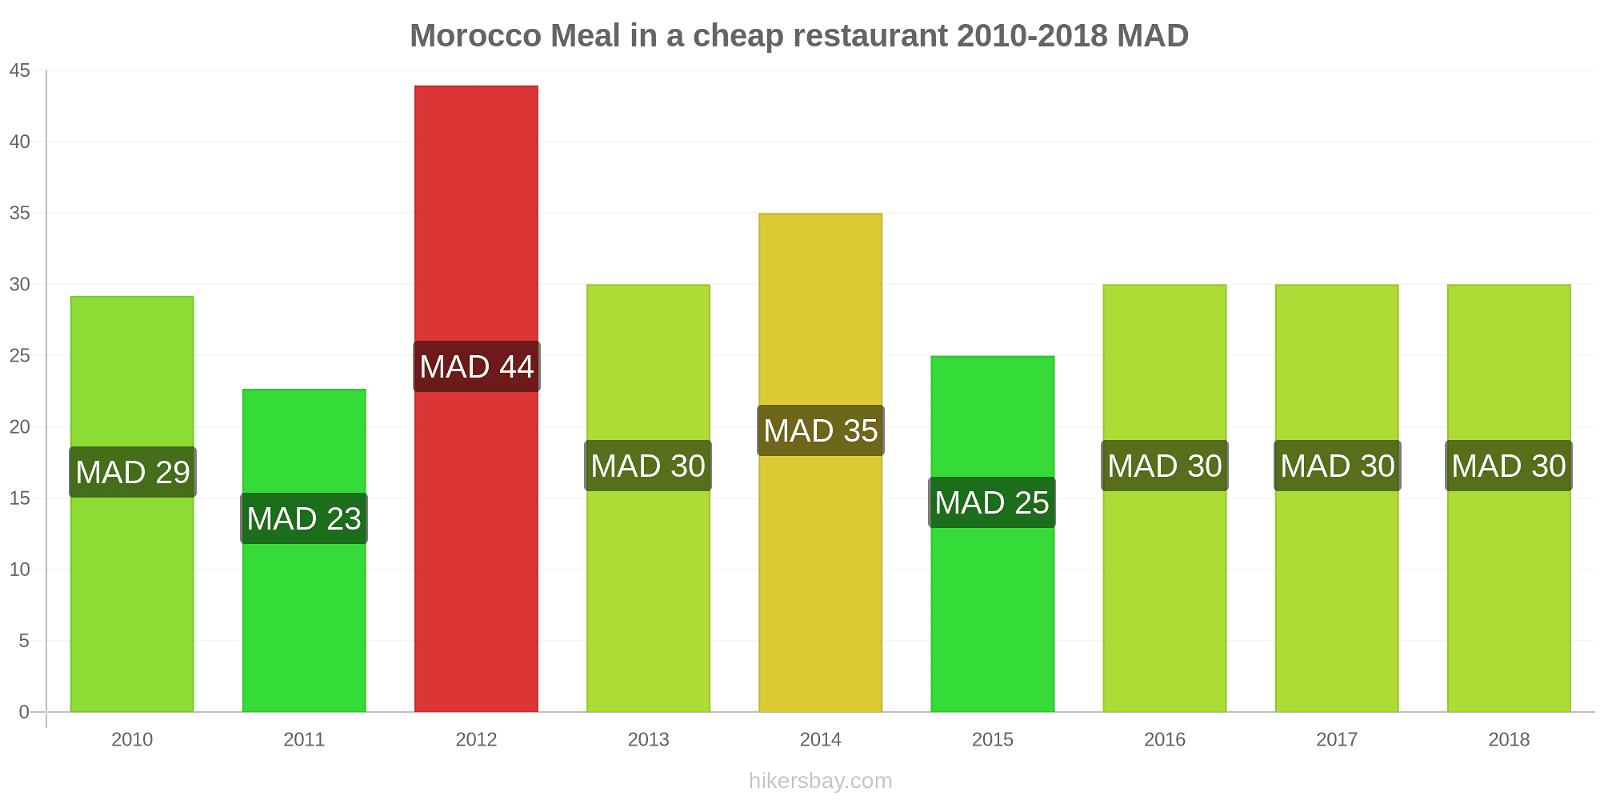 Morocco price changes Meal in a cheap restaurant hikersbay.com